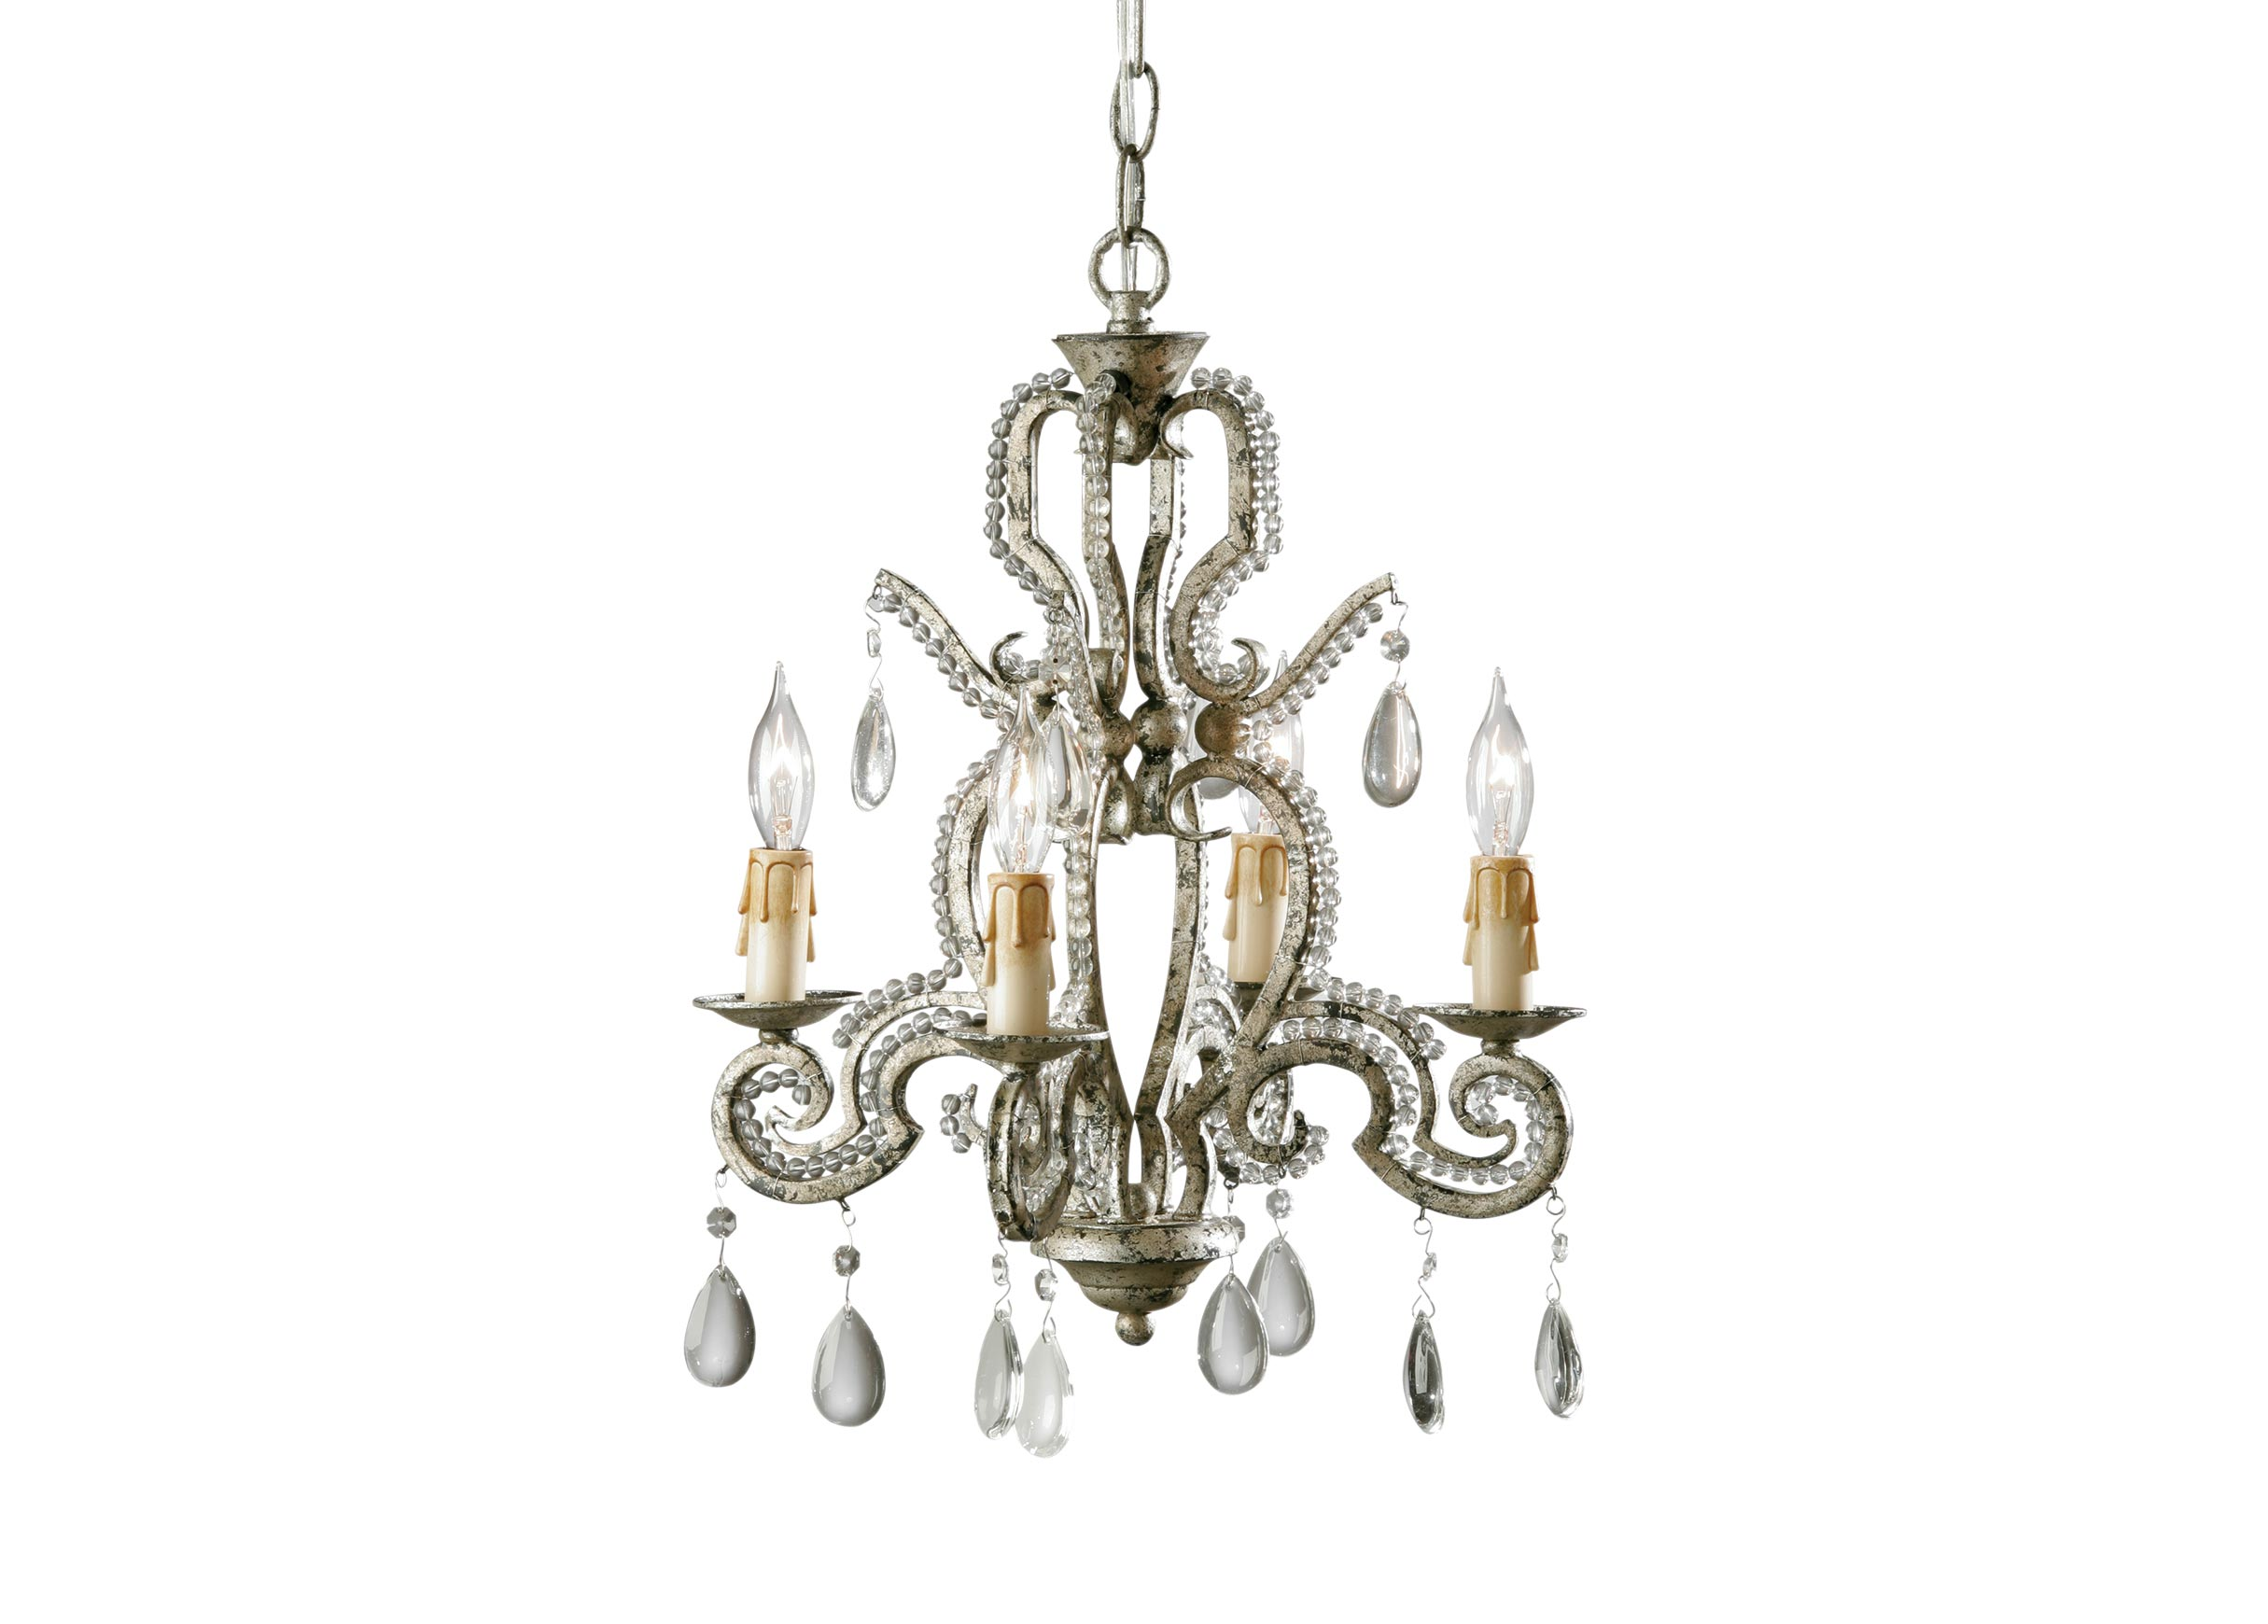 Four light kendall mini chandelier chandeliers ethan allen images four light kendall mini chandelier largegray arubaitofo Image collections